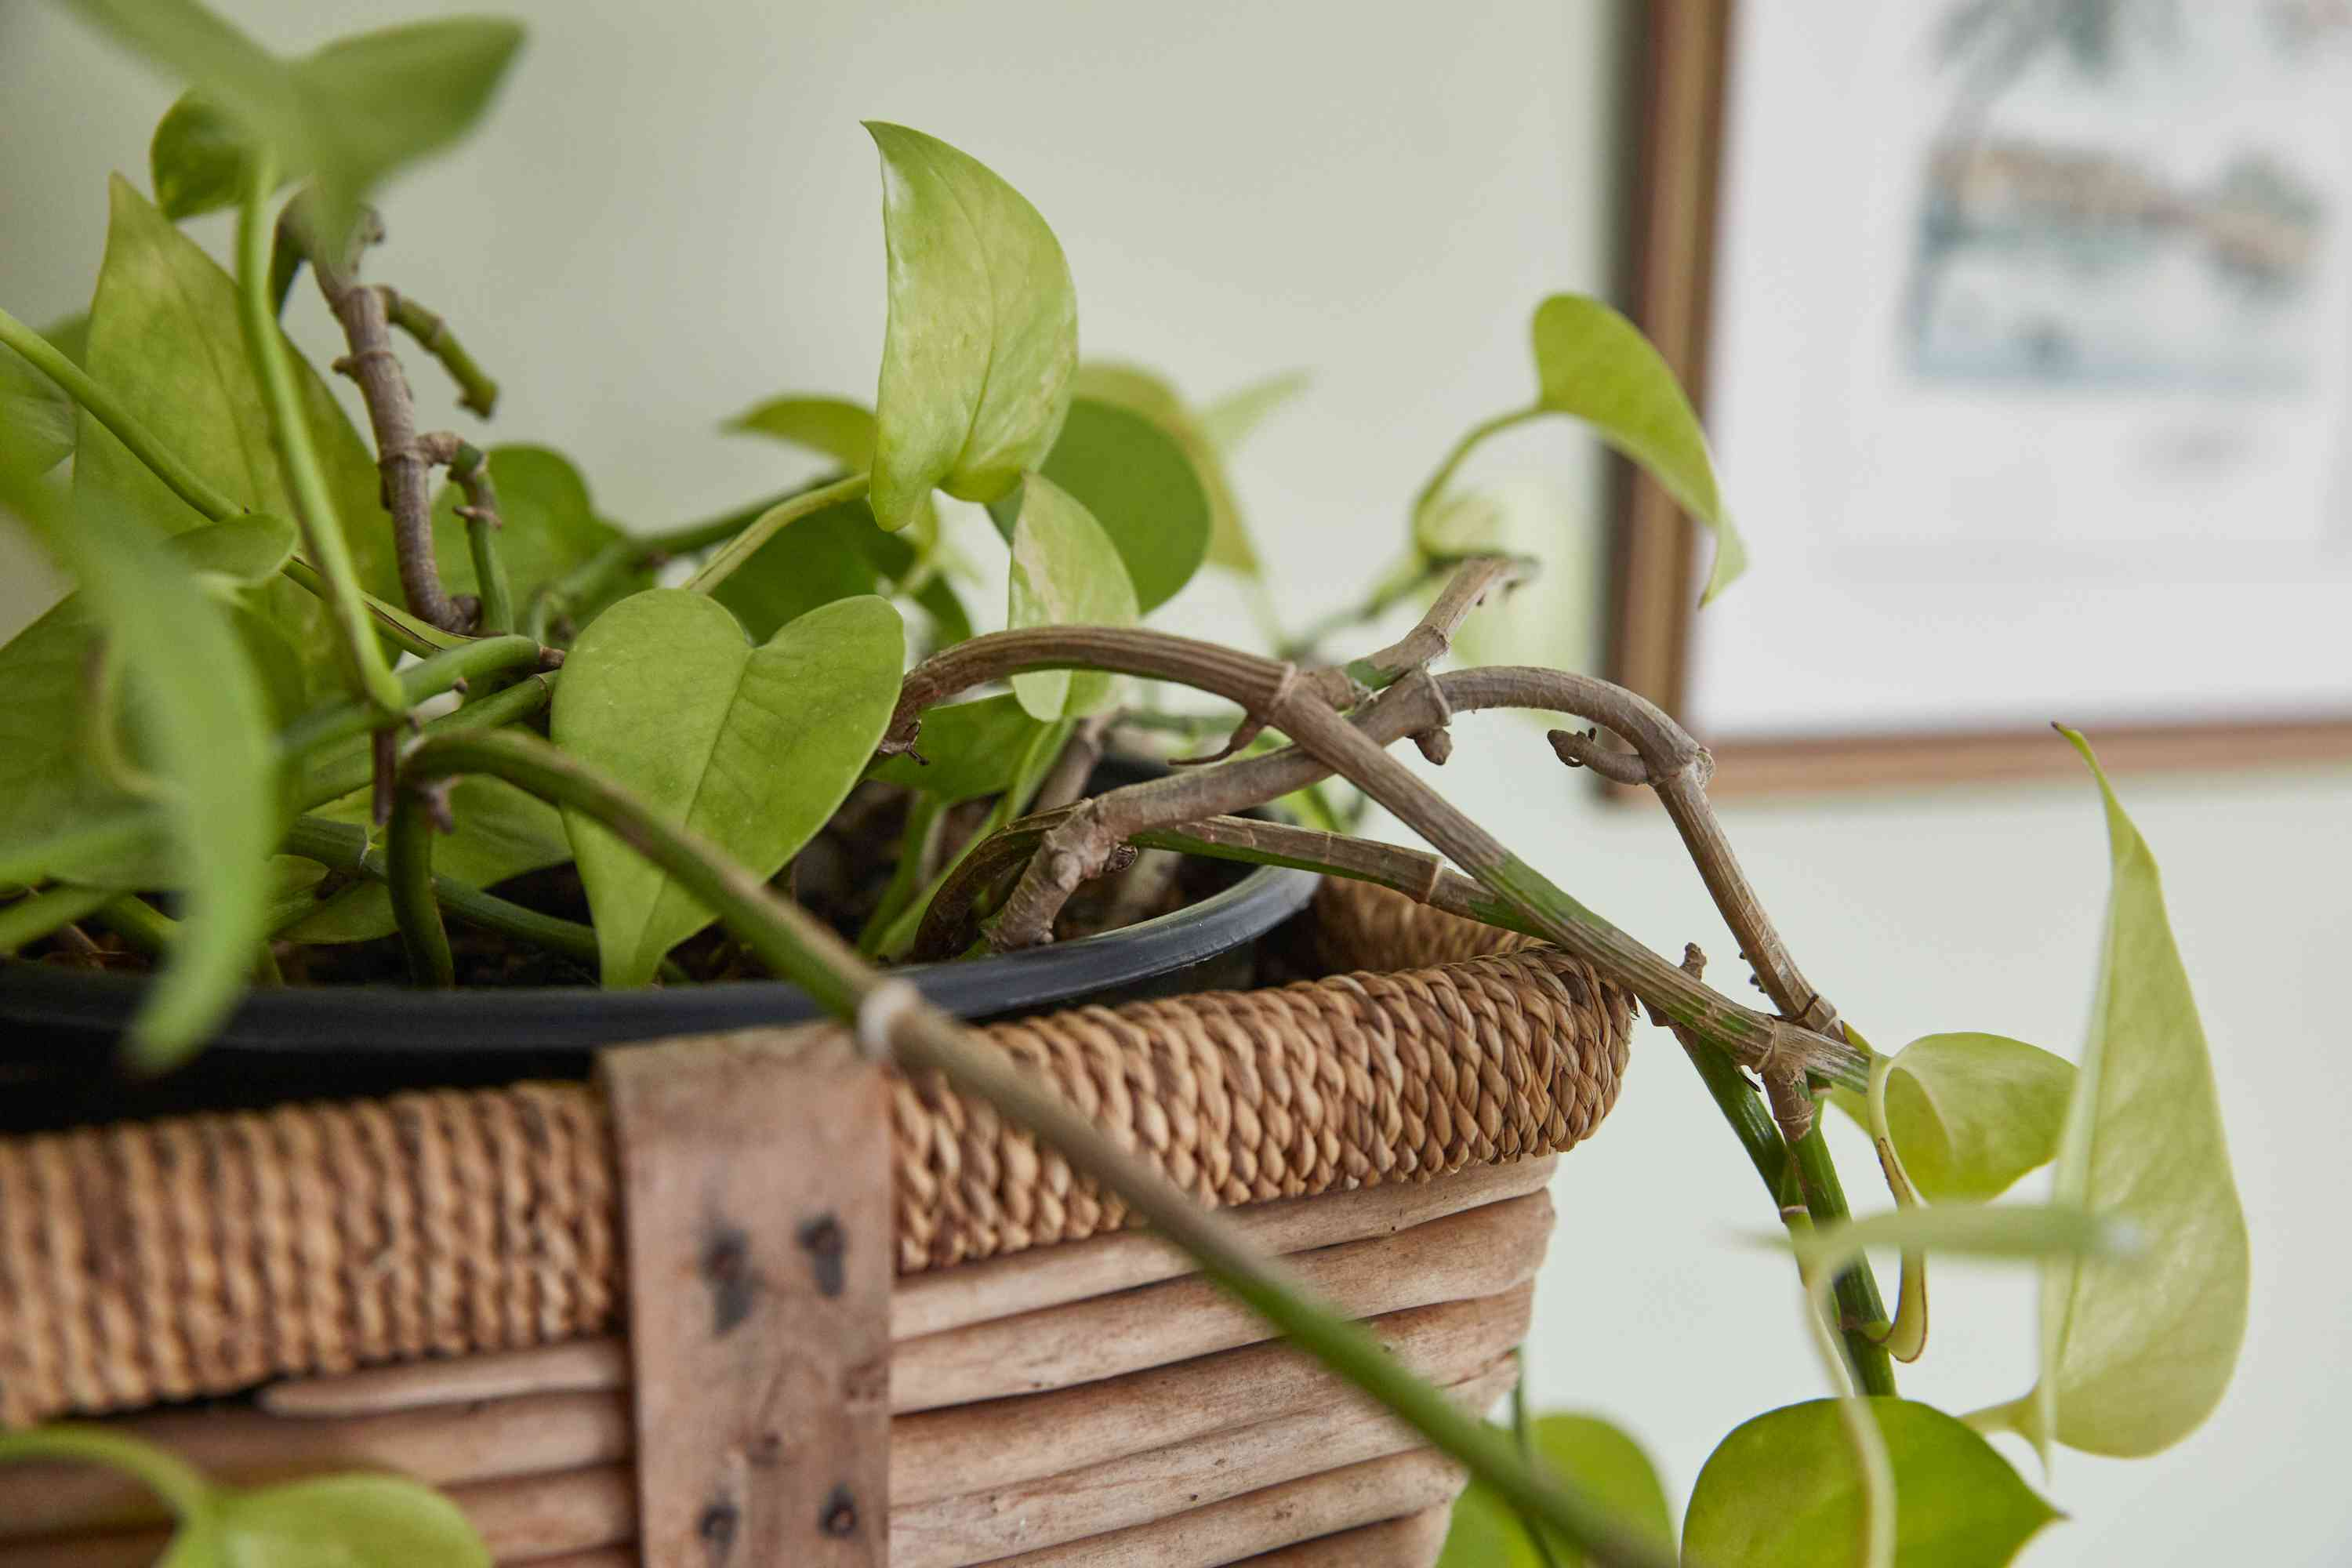 philodendron in a basket